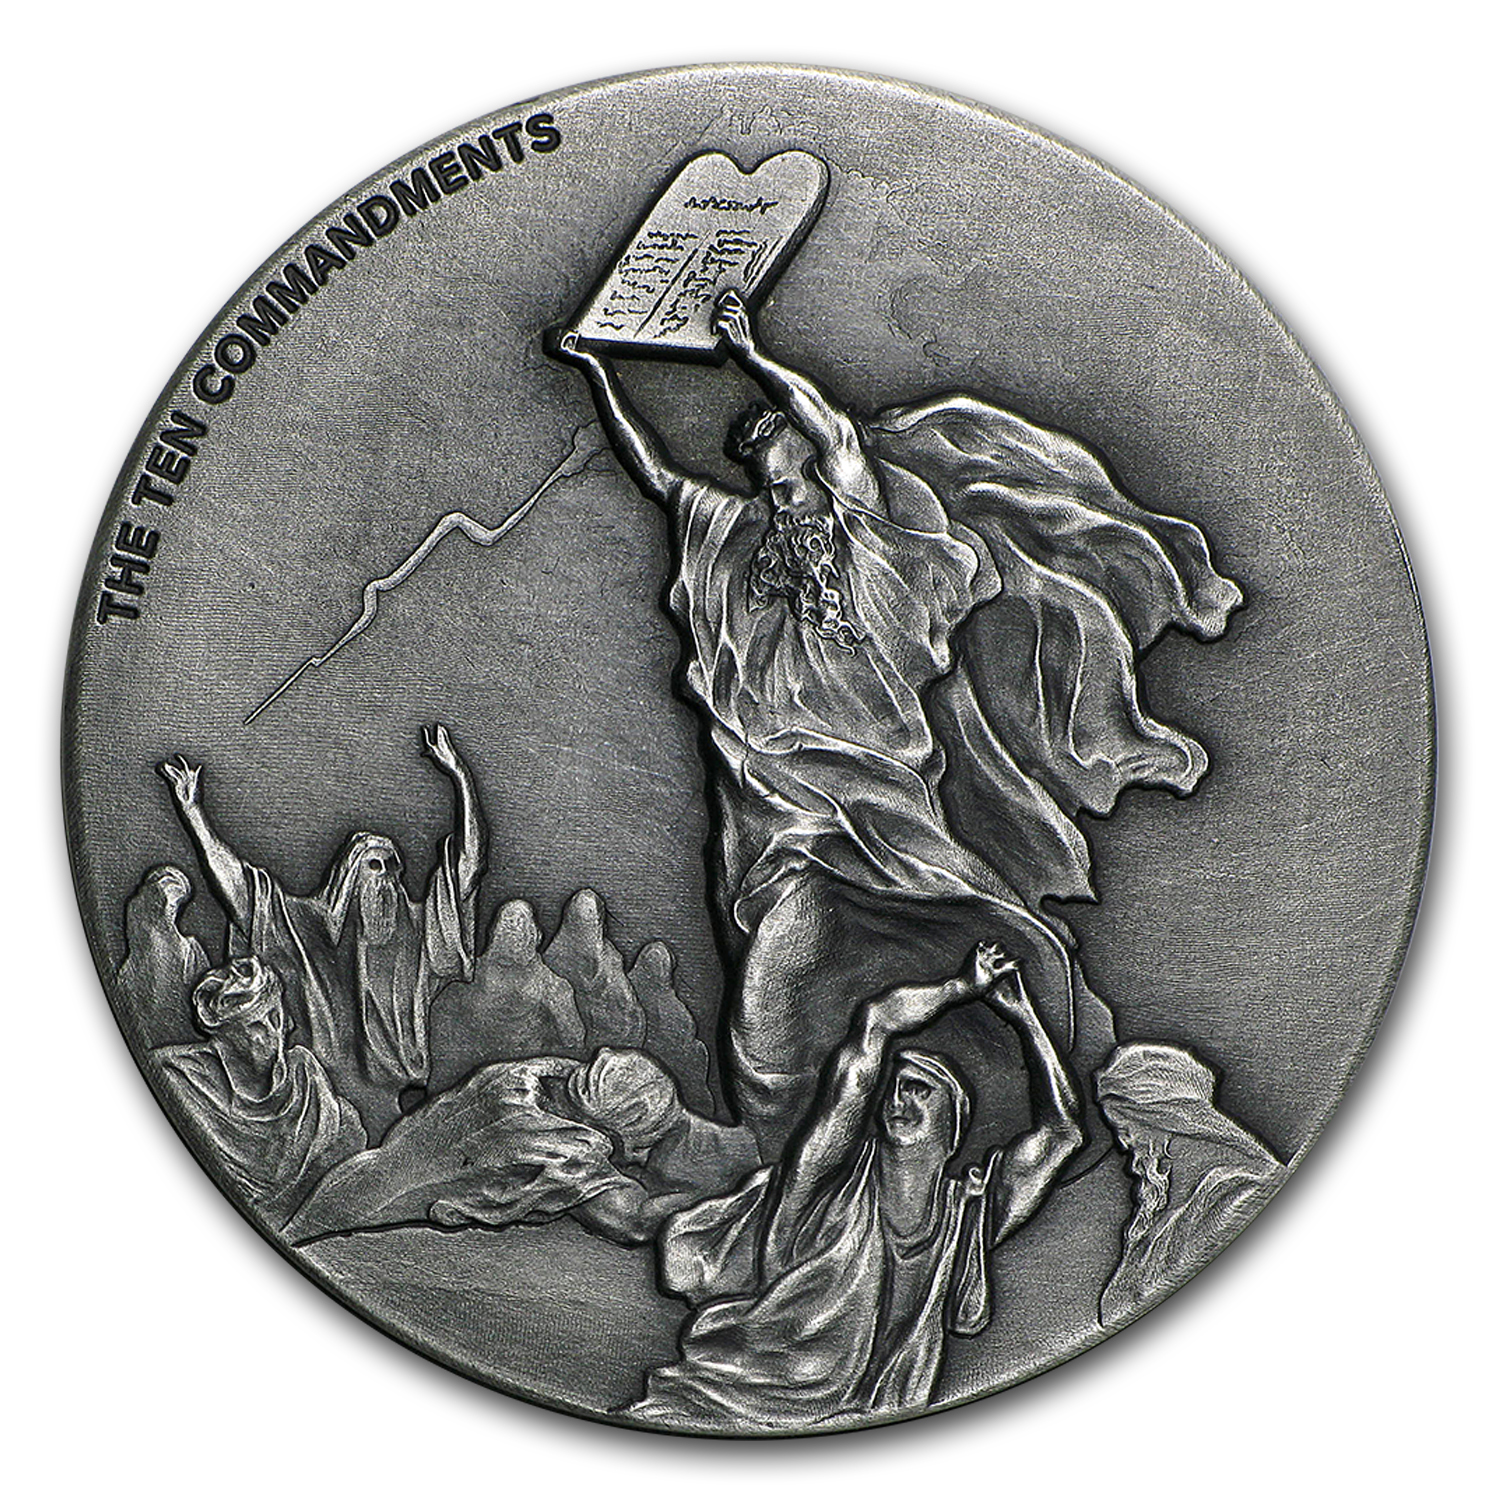 2 oz Silver Coin - Biblical Series (Ten Commandments)